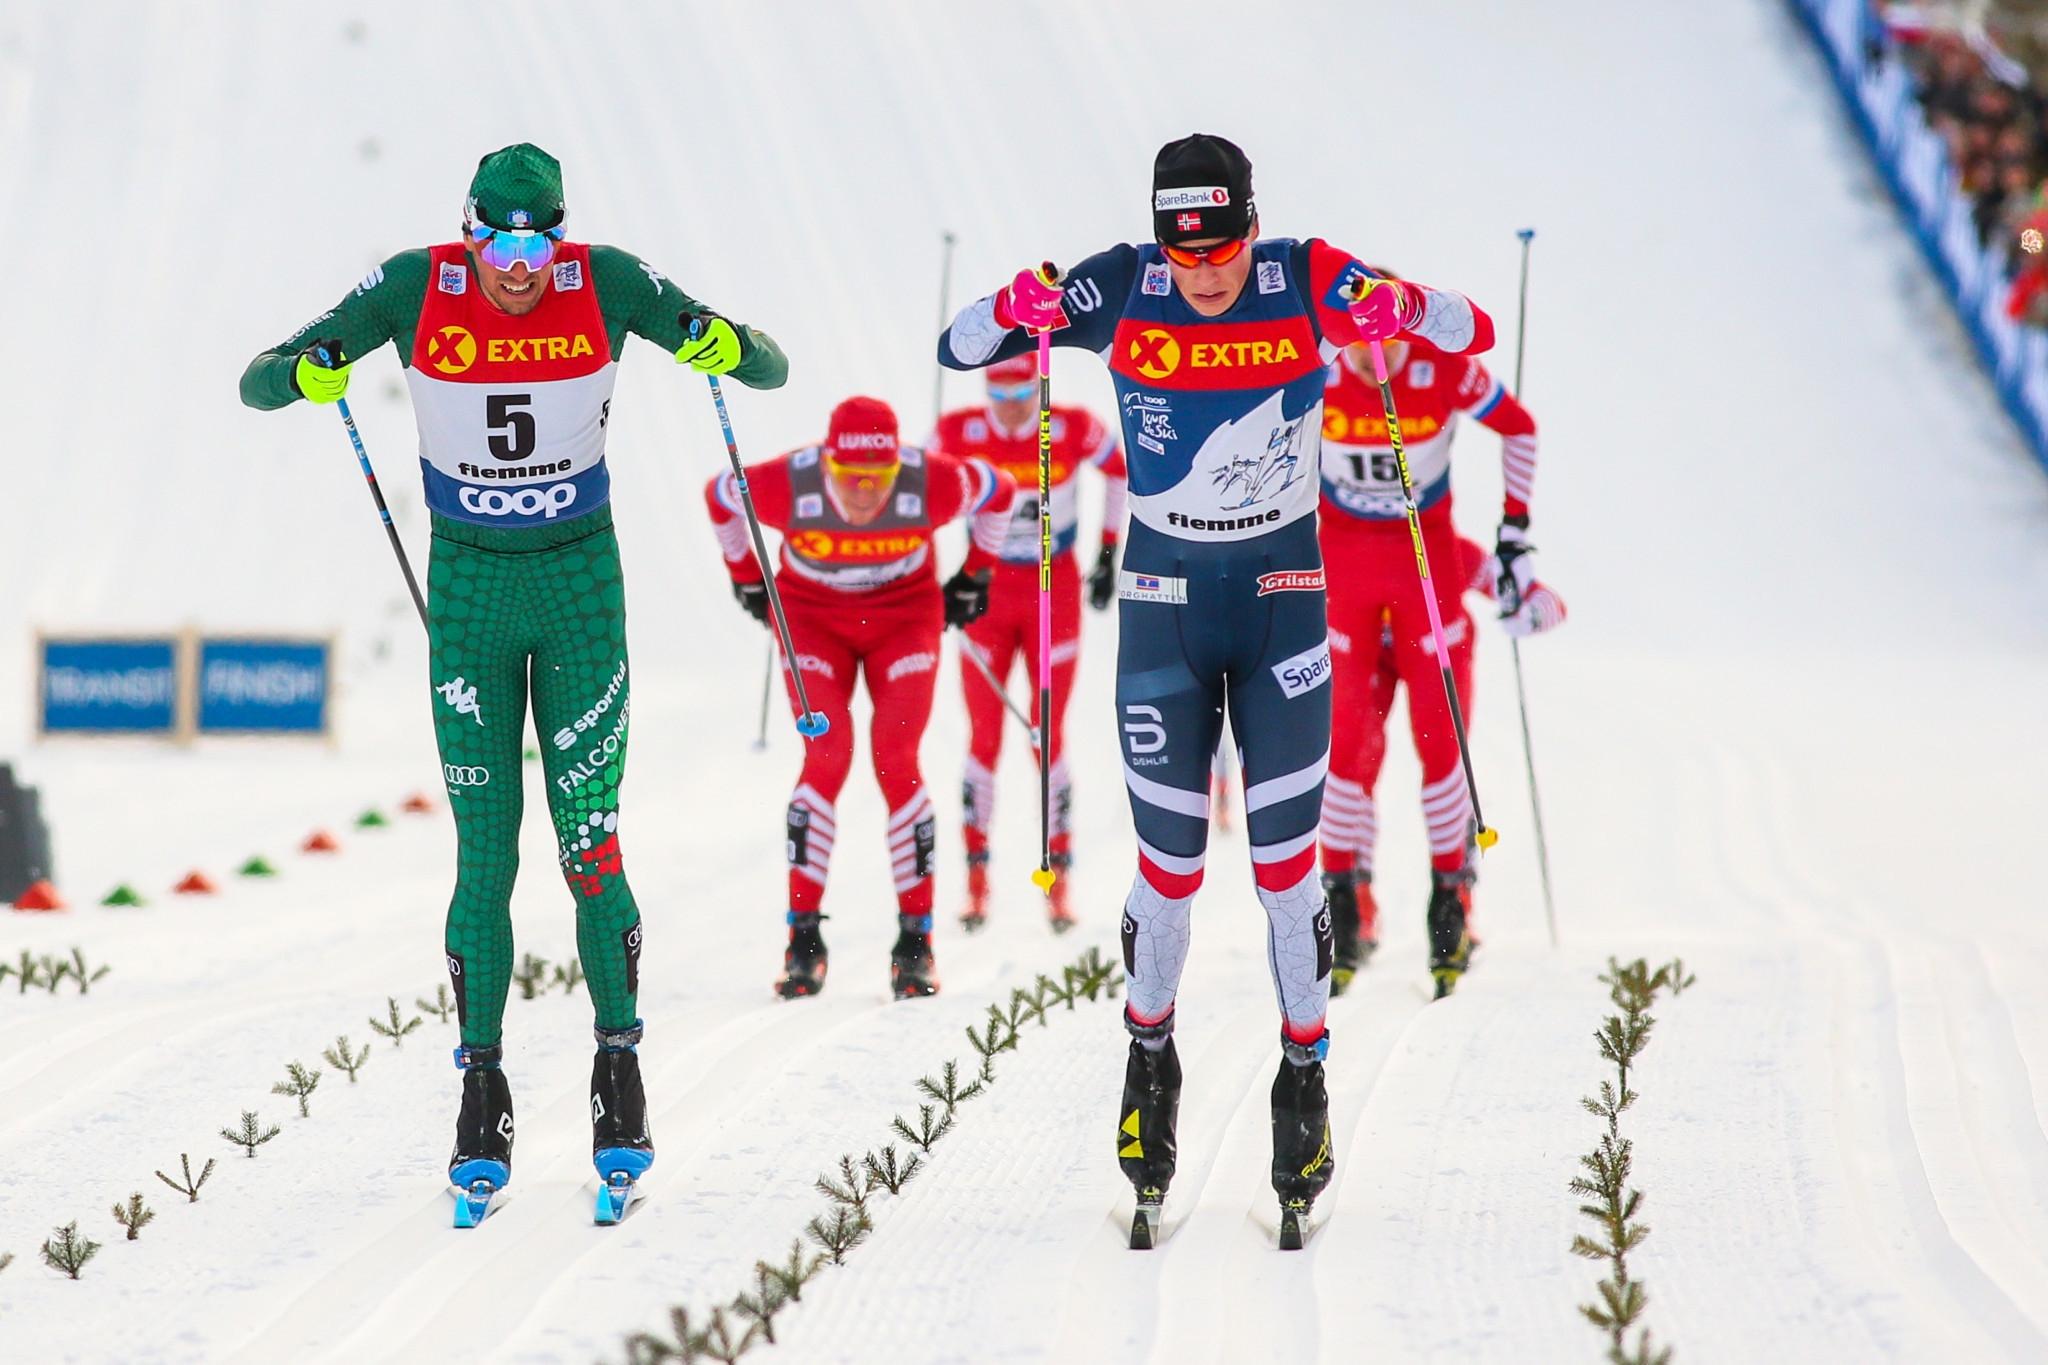 Norway swept the men's and women's sprint freestyle races at the FIS Cross-Country World Cup in Lahti ©Getty Images